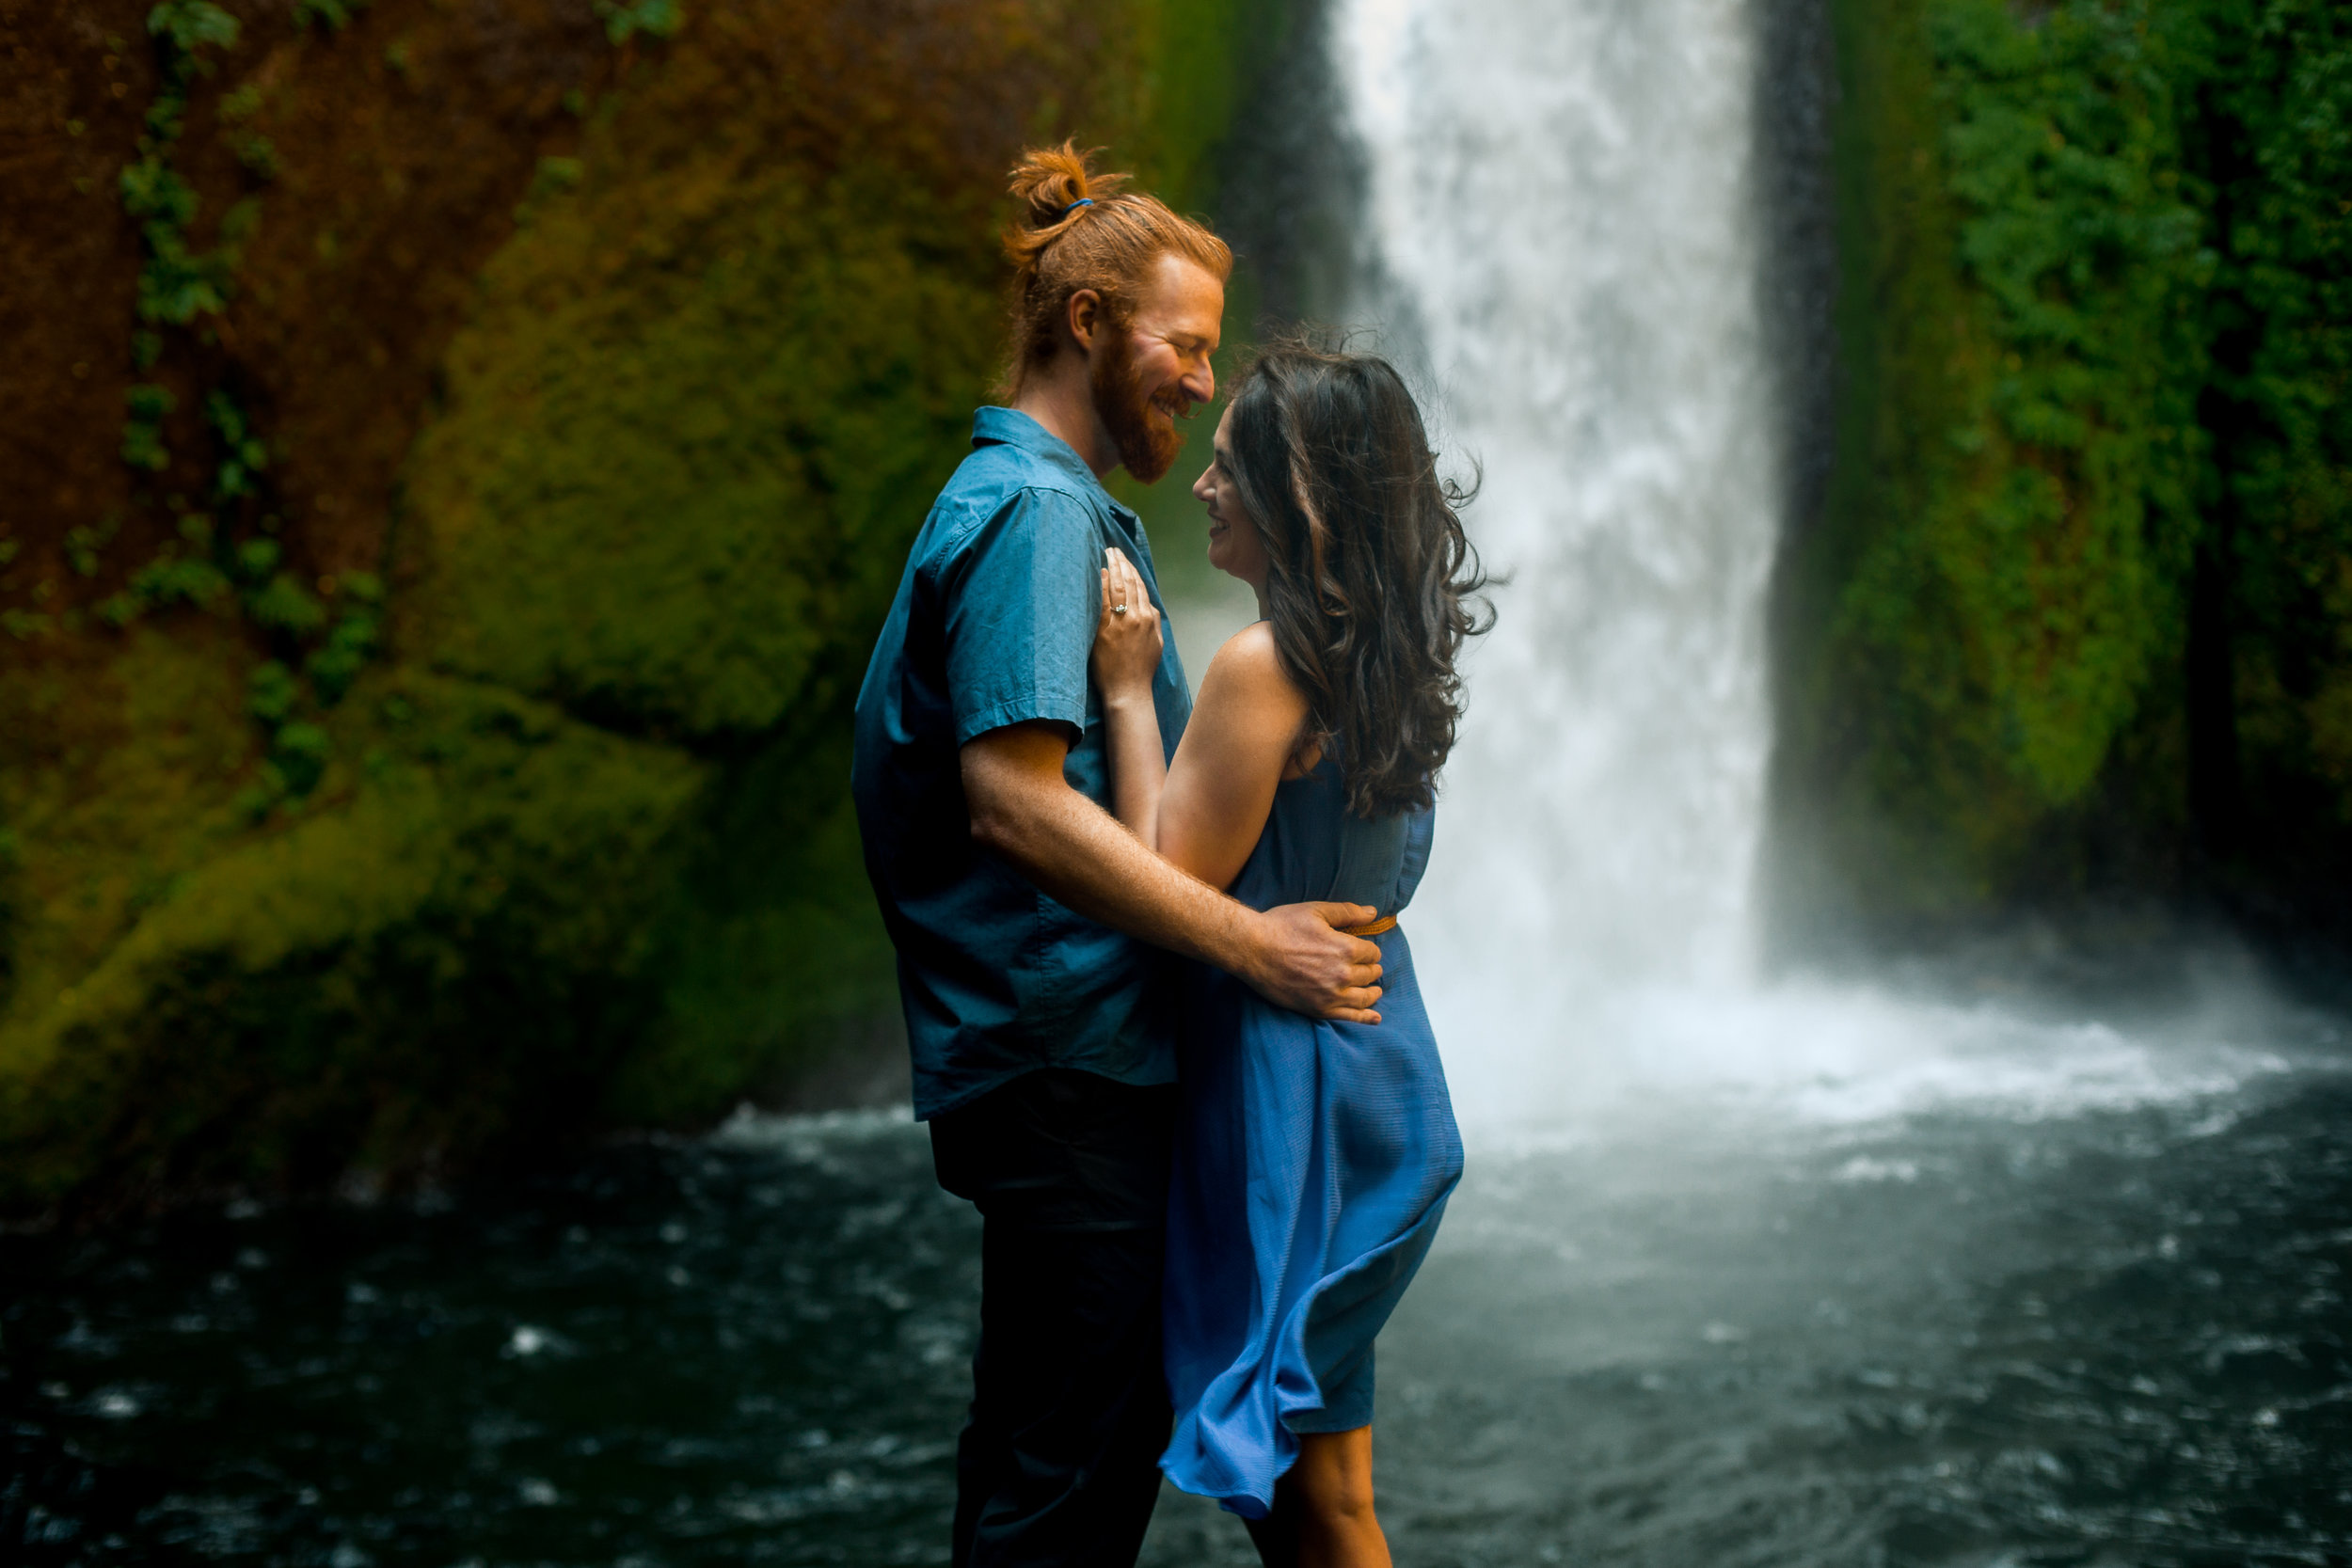 nicole-daacke-photography-wahclella-falls-waterfall-engagement-session-portland-engagement-photographer-columbia-river-gorge-oregon-elopement-photographer-8.jpg